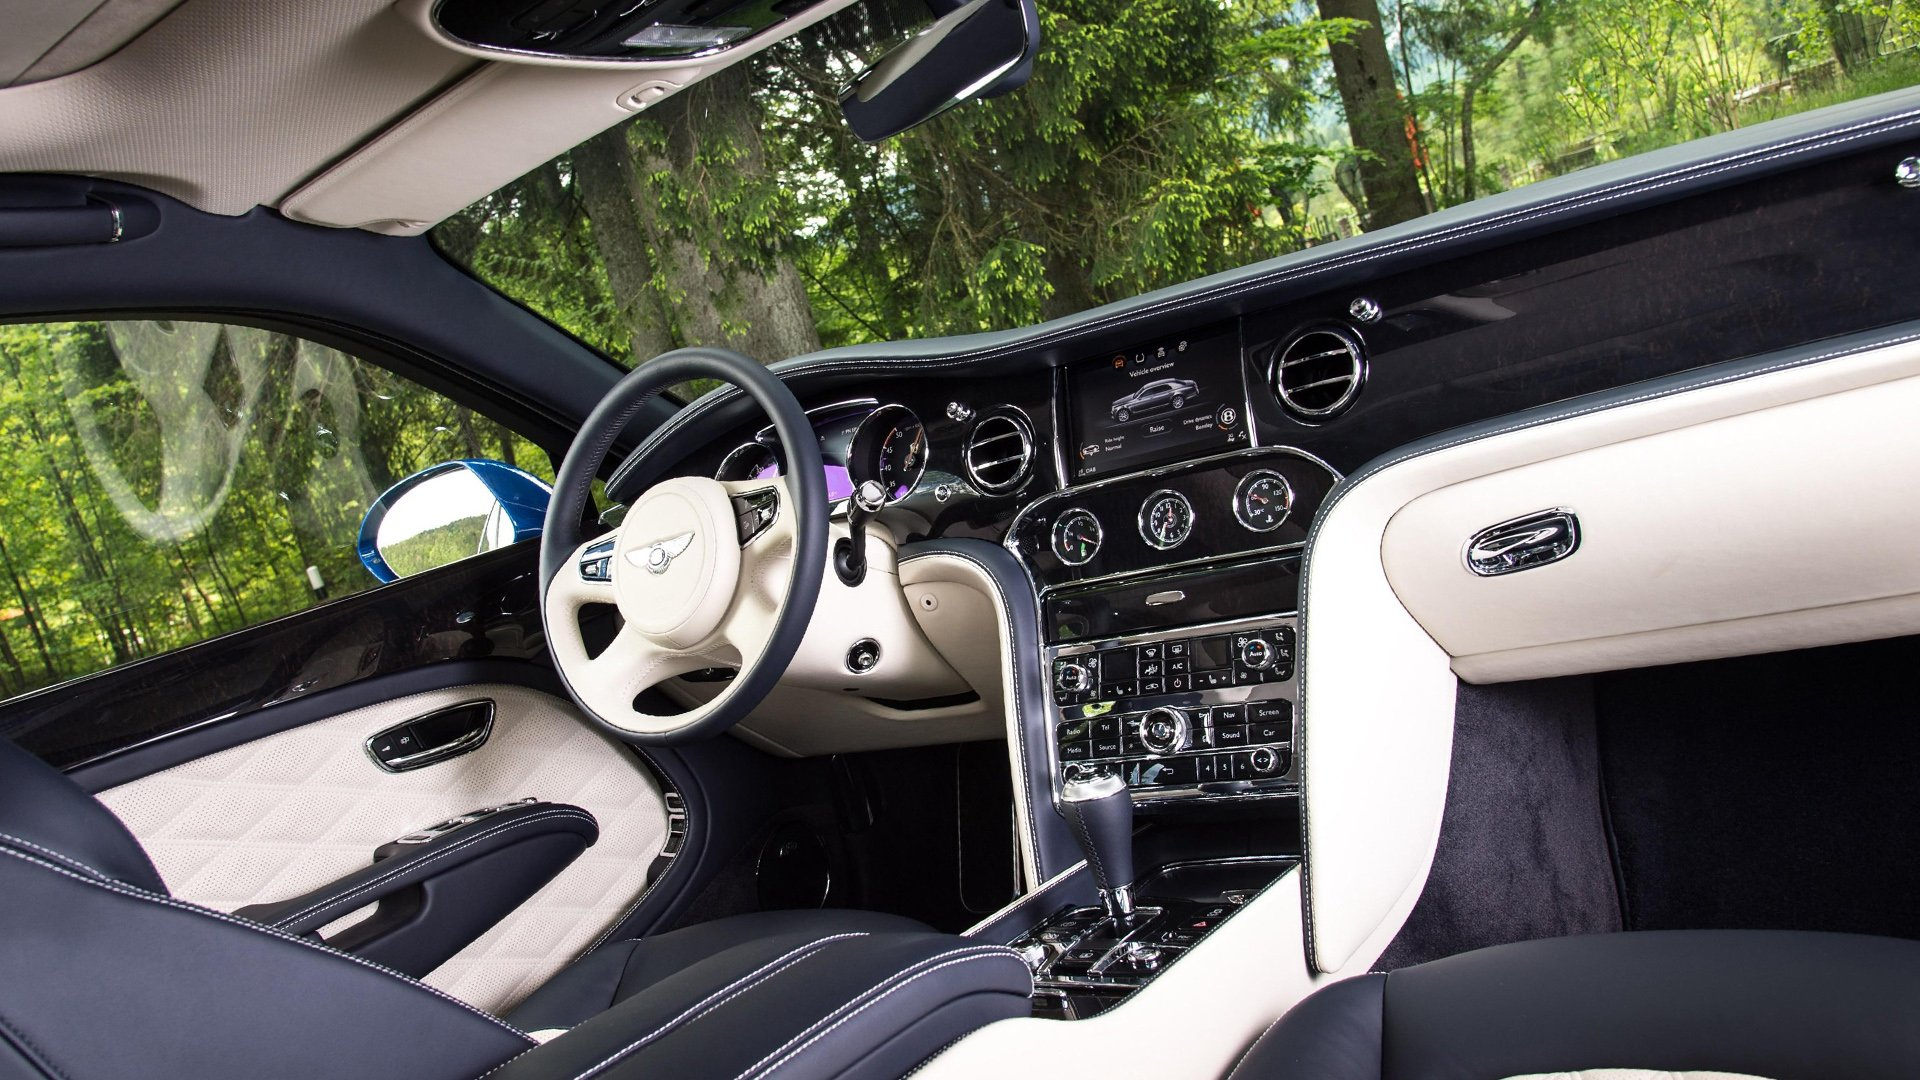 New 2019 Bentley Mulsanne Interior Design